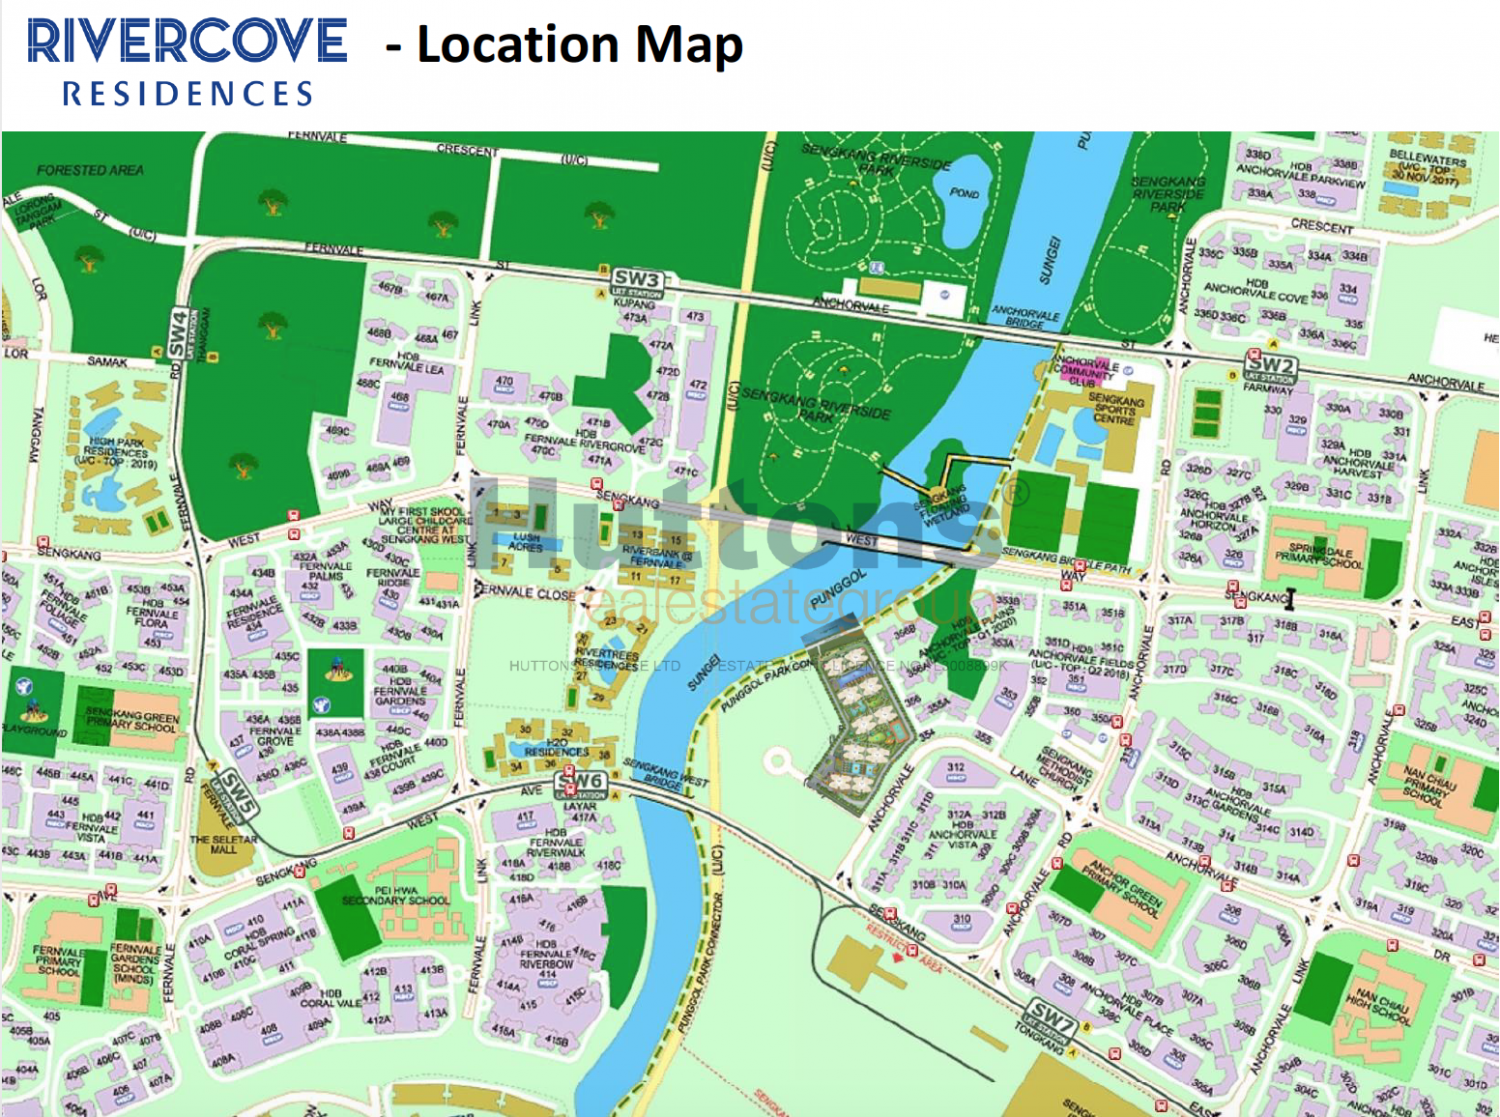 Rivercove Residences Map